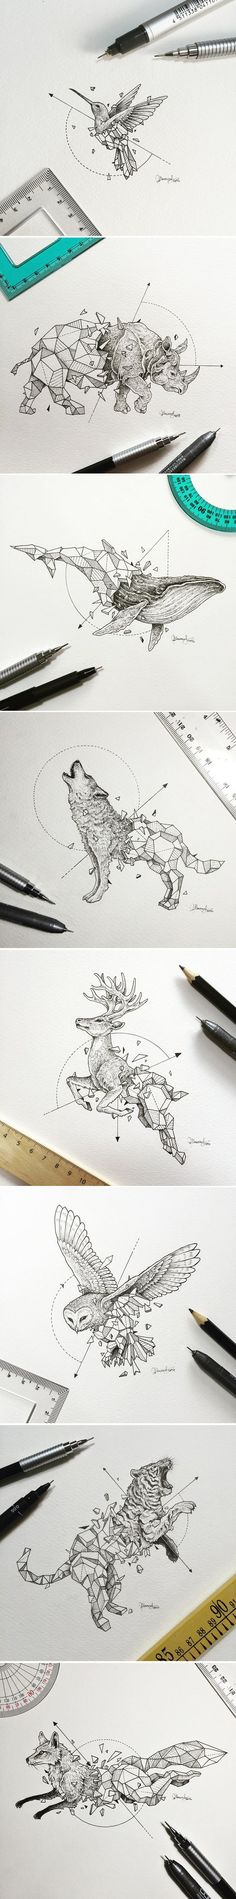 Manila-based illustrator Kerby Rosanes known as Sketchy Stories has created a new series of sketches combing…